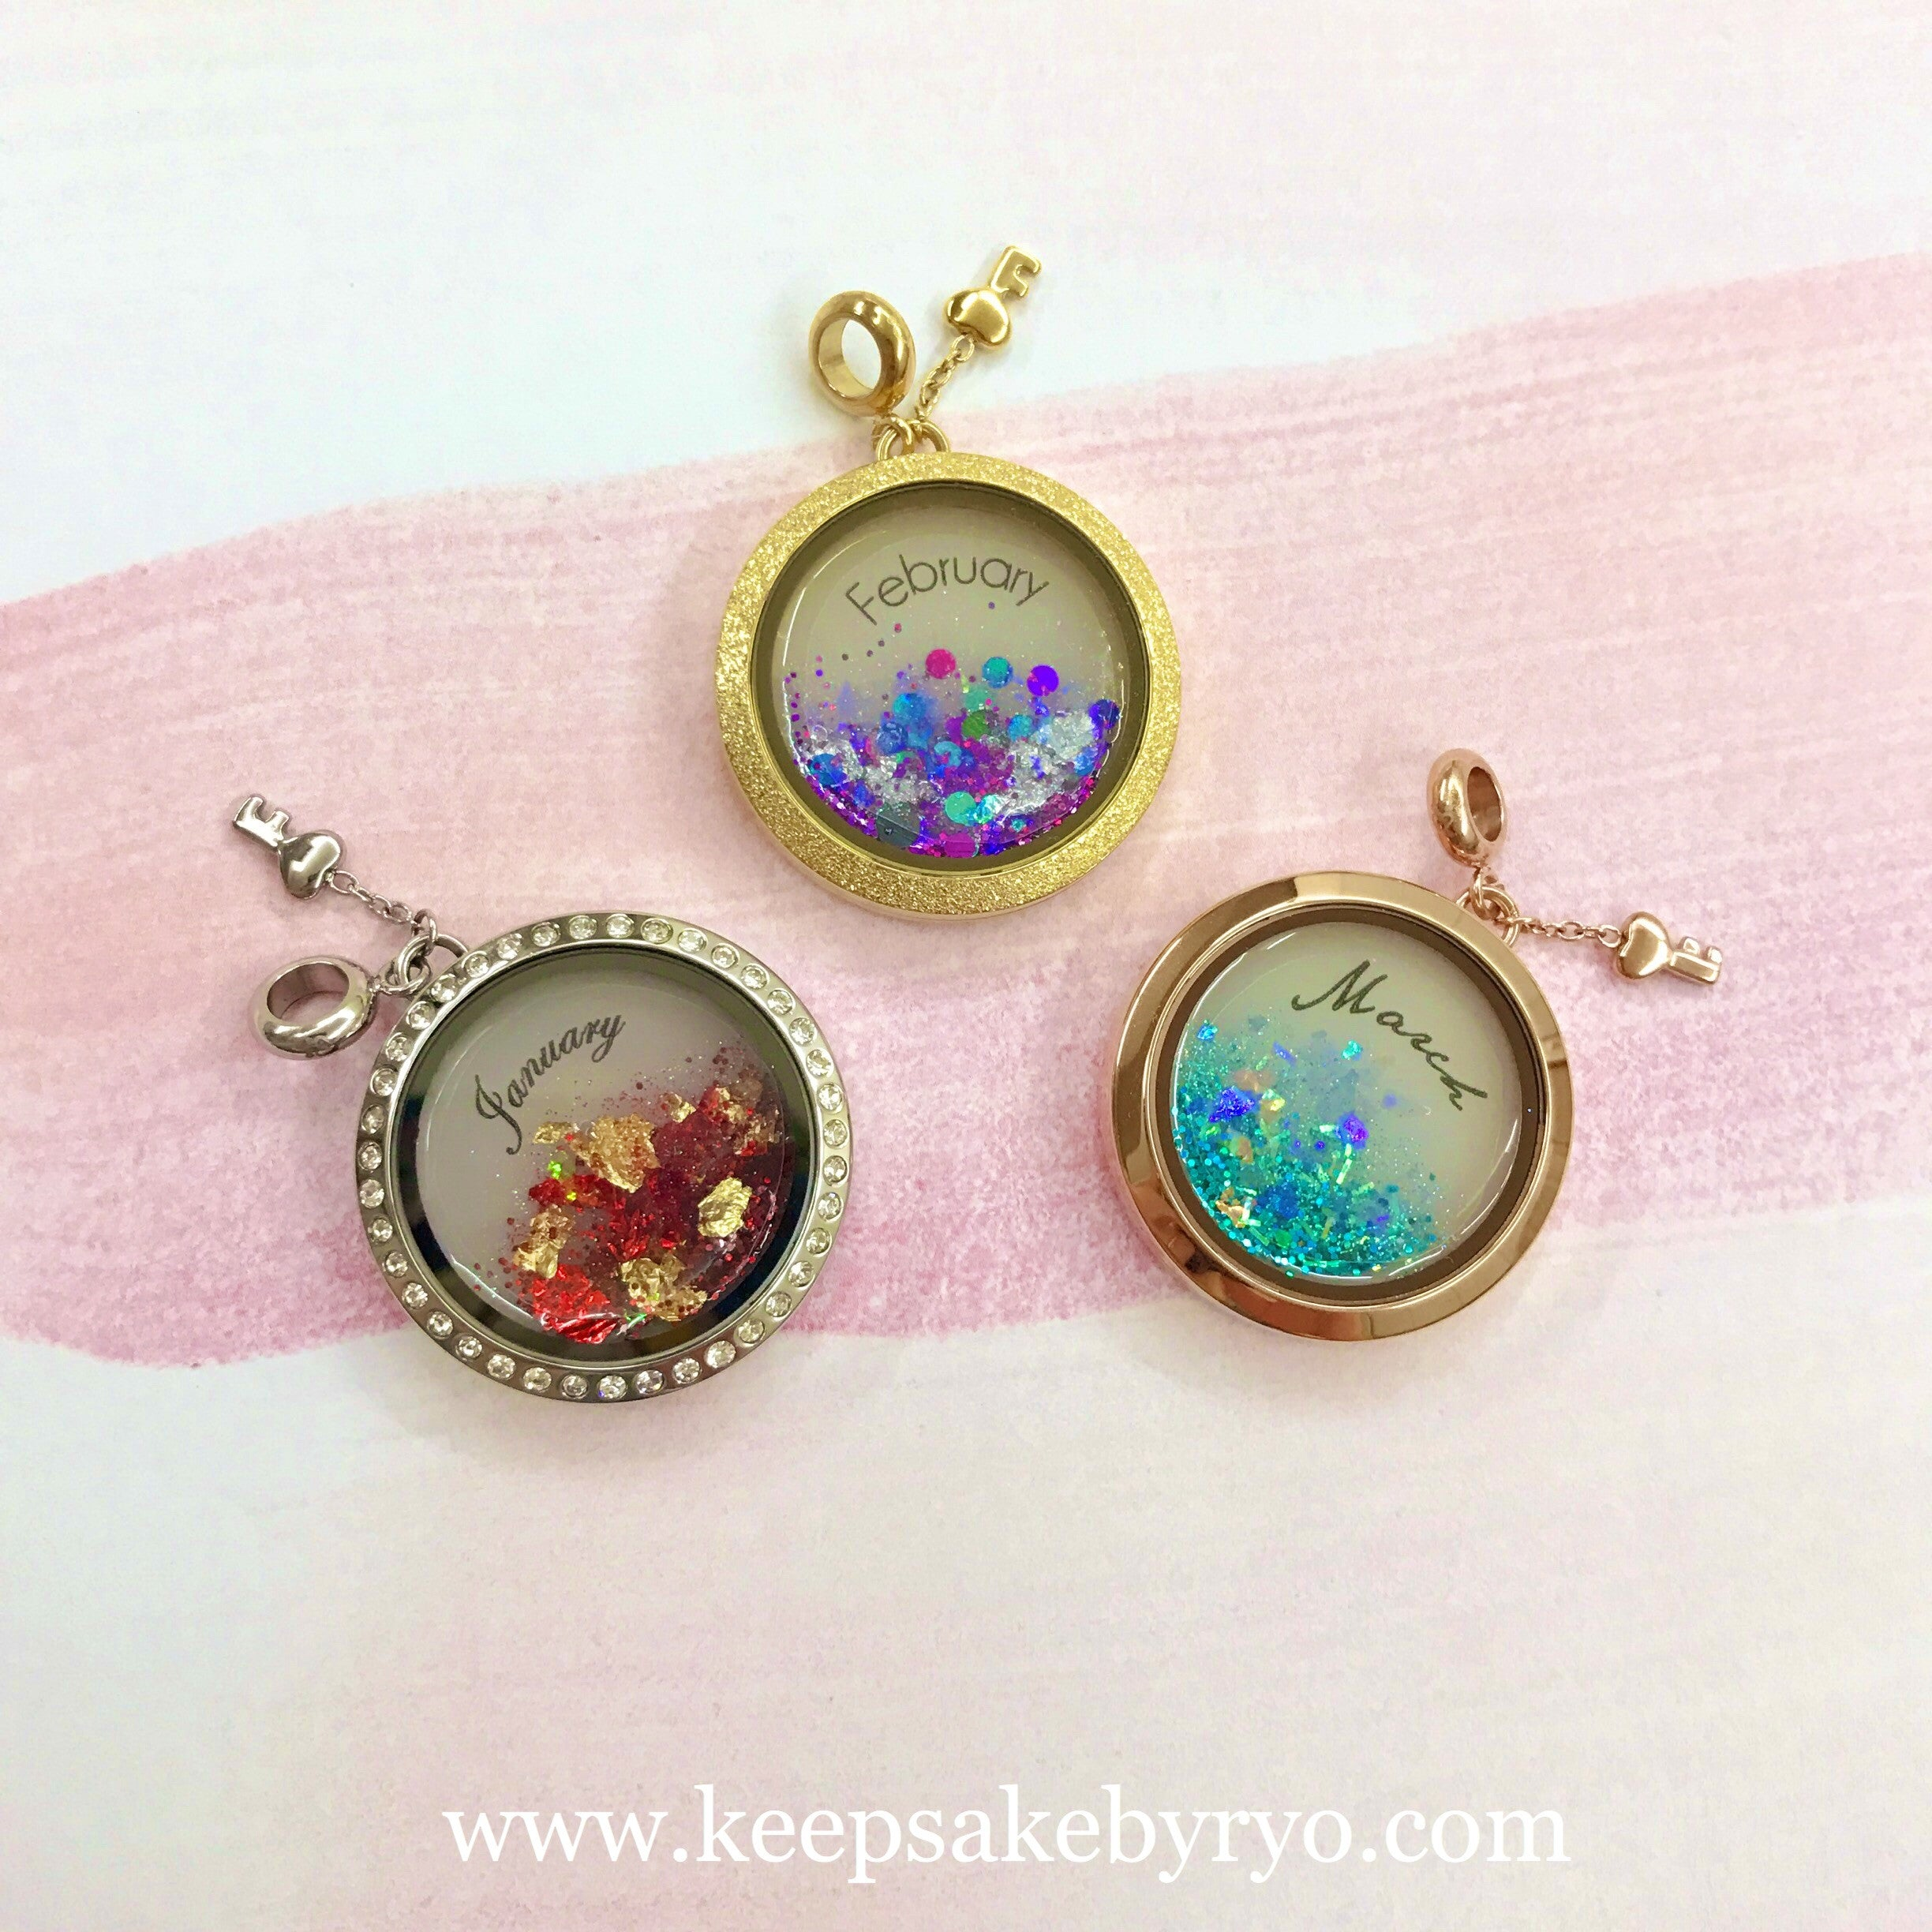 memory lily blanche jewellery pendant rosegold base locket vermeil keeper gold rose lockets memorykeeperpendant